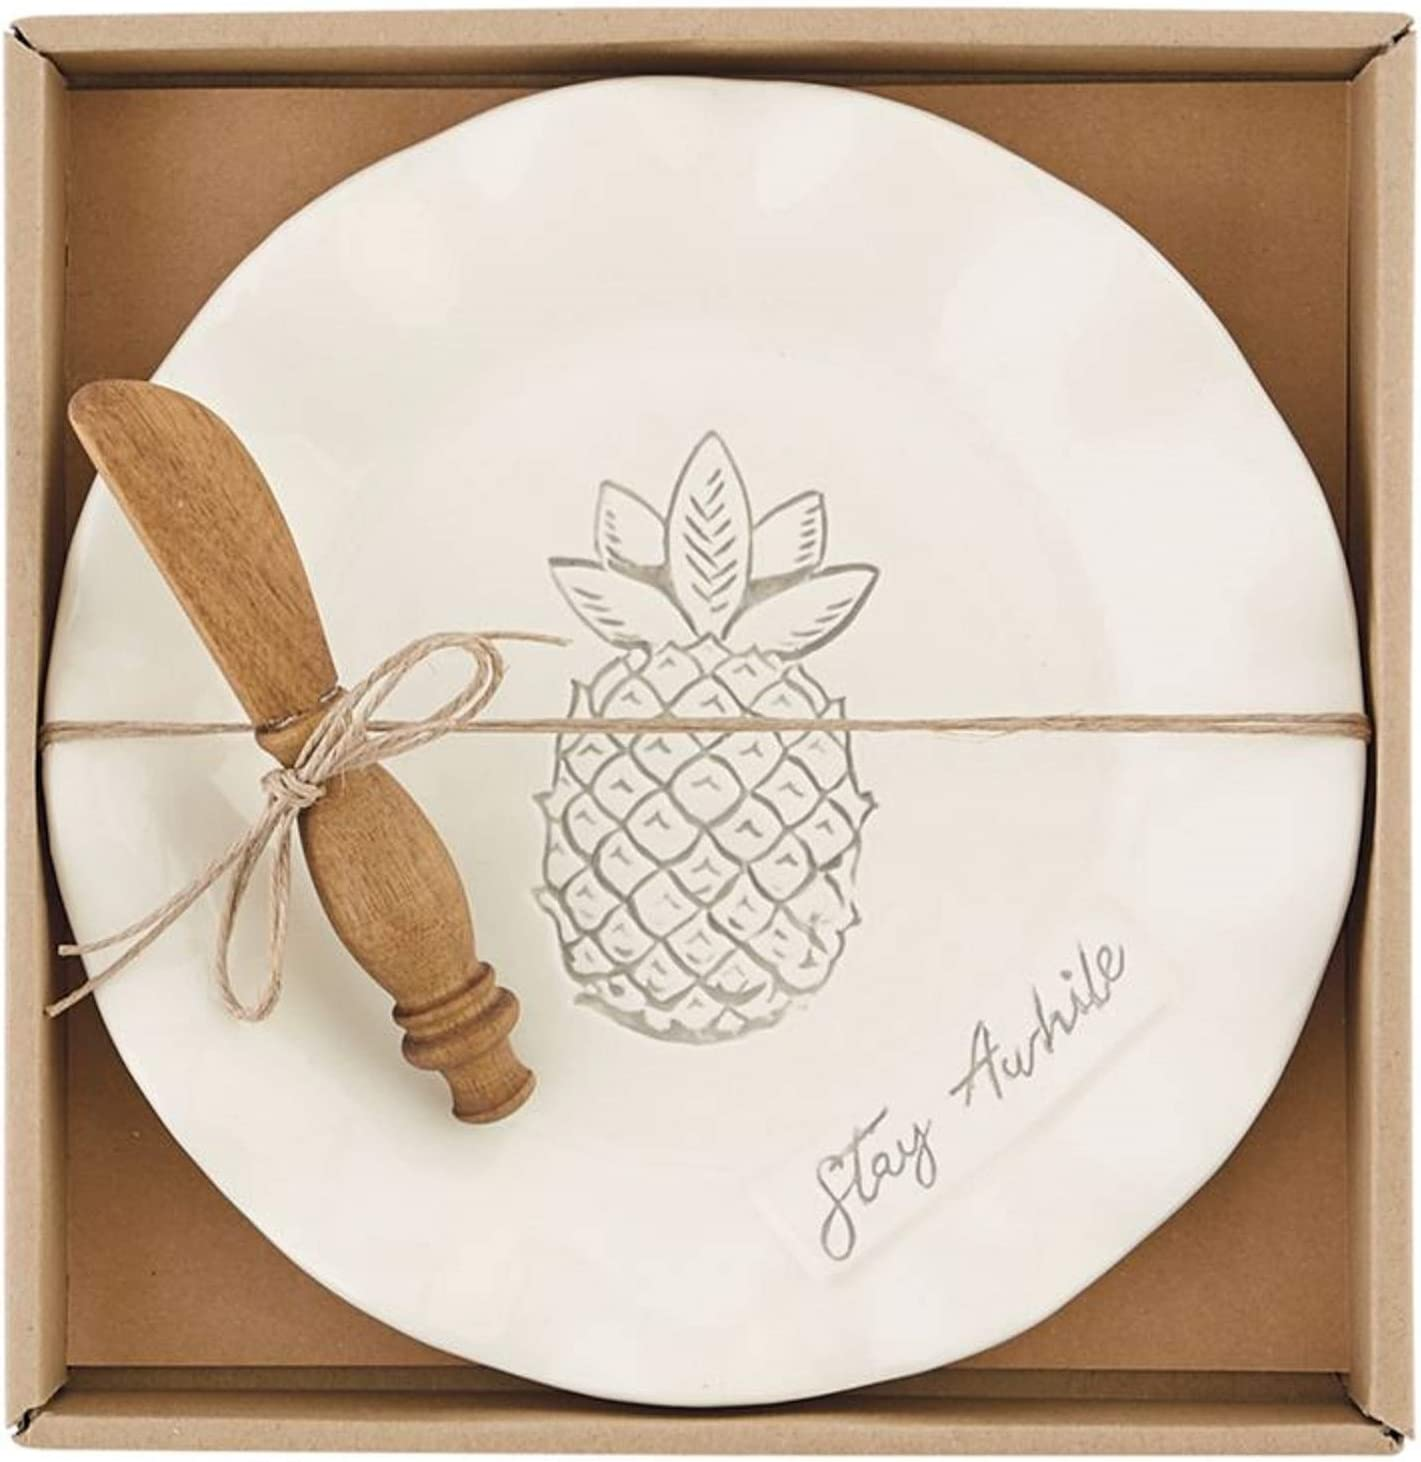 Mud Pie 10 inch Pineapple Cheese and Serving plate with wood spreader